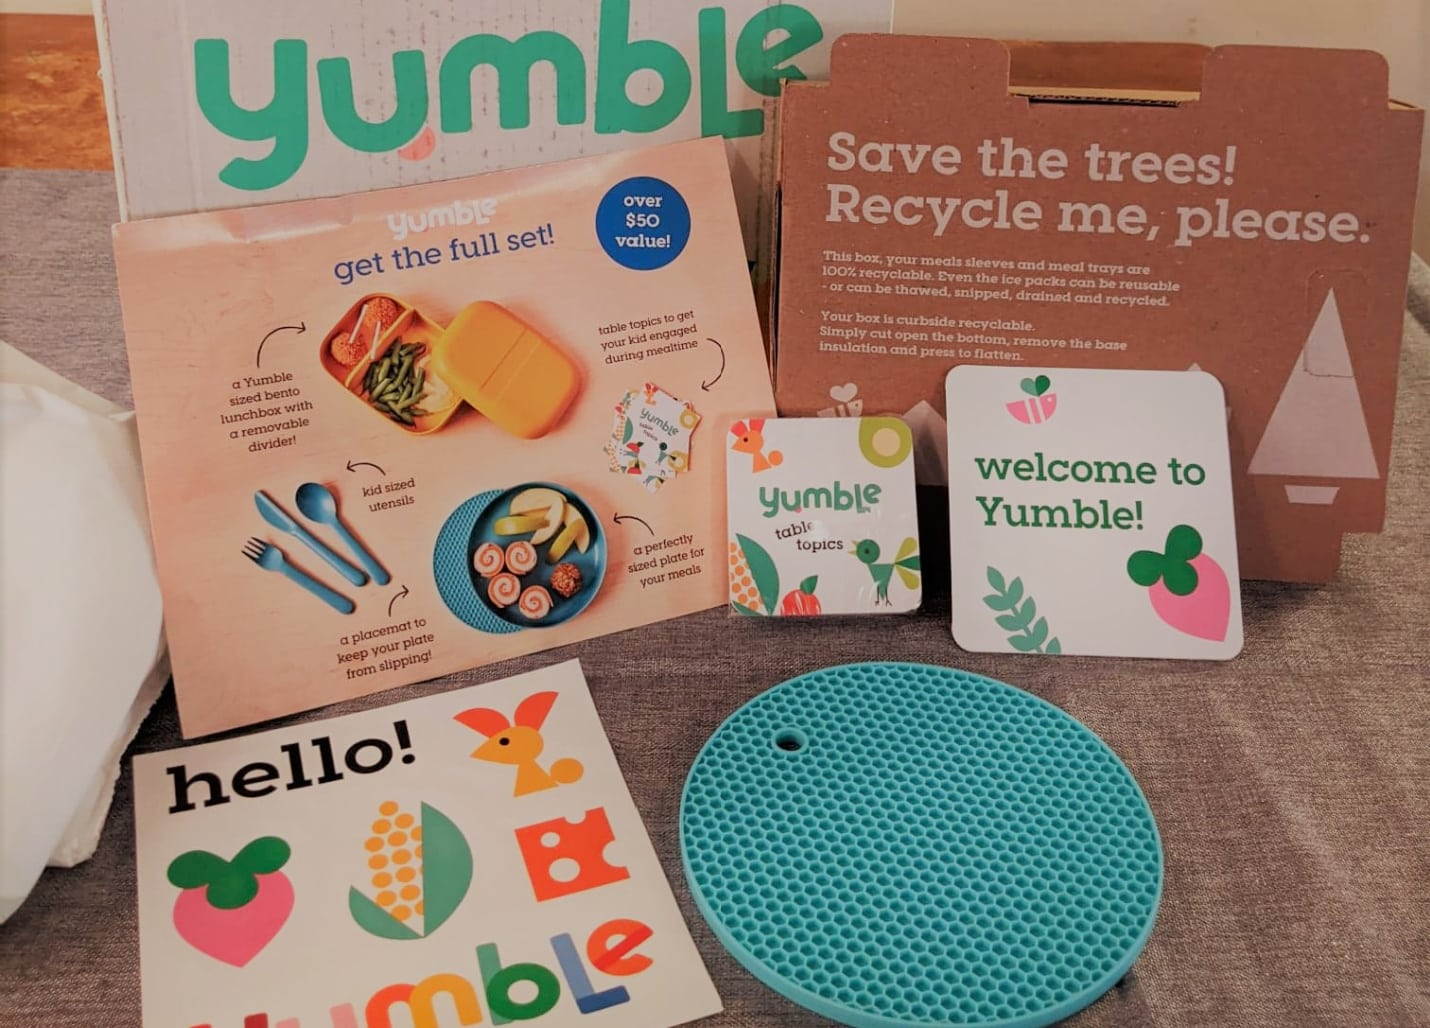 Yumble packaging